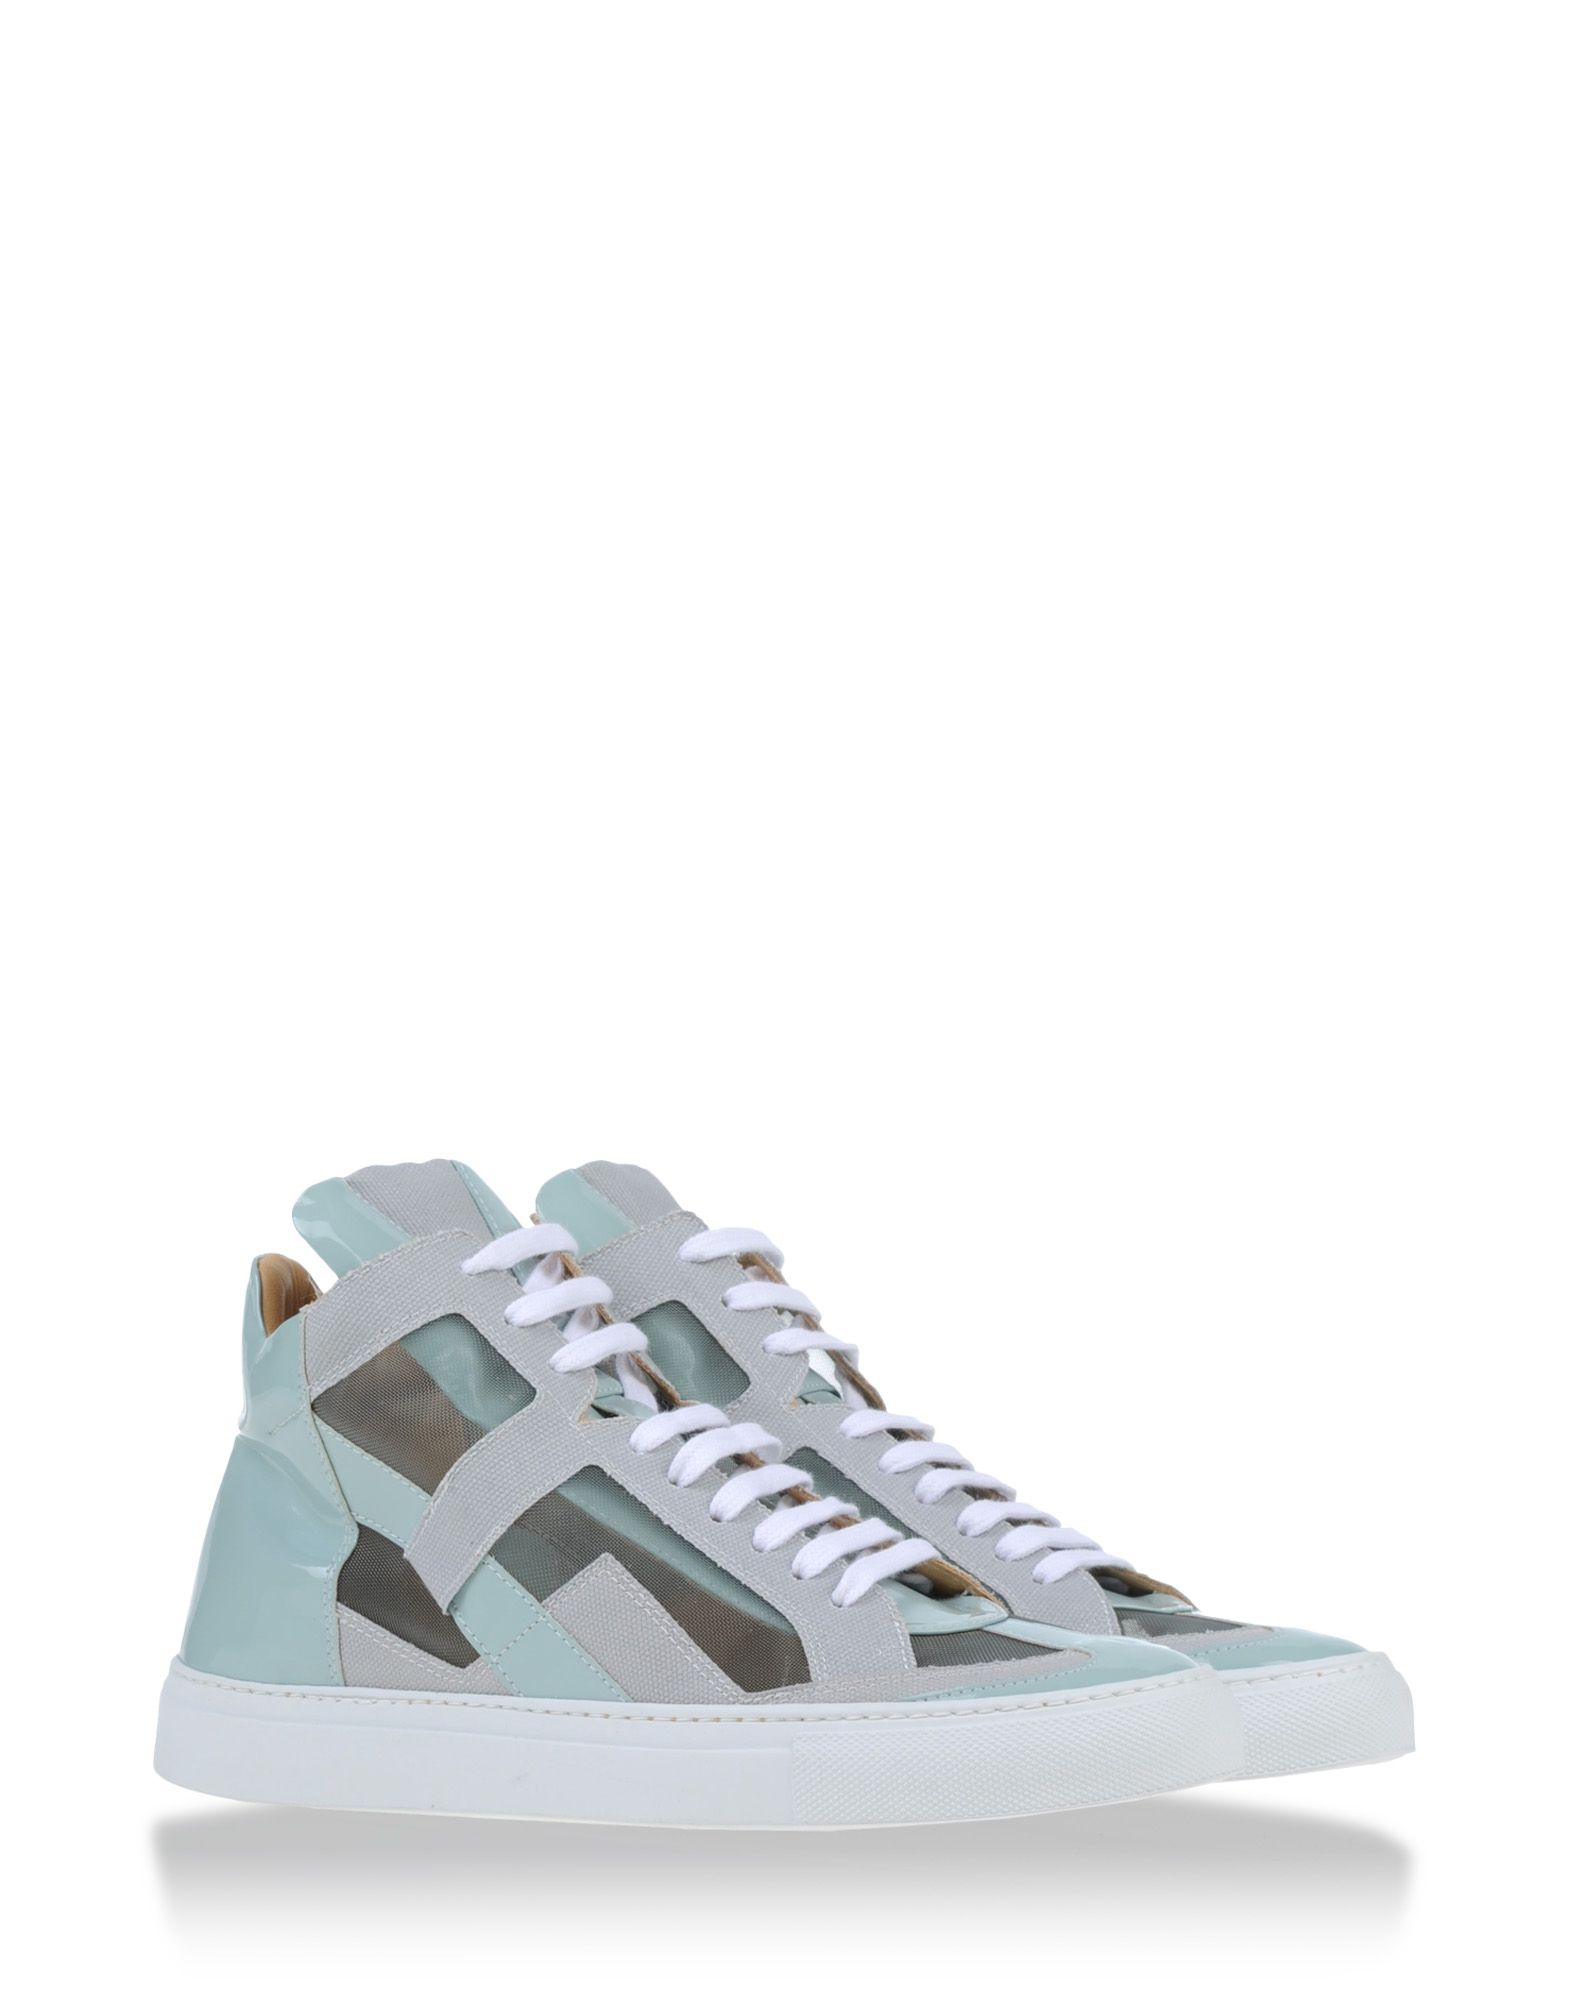 Mm6 by maison martin margiela high top sneakers in teal for Mm6 maison martin margiela